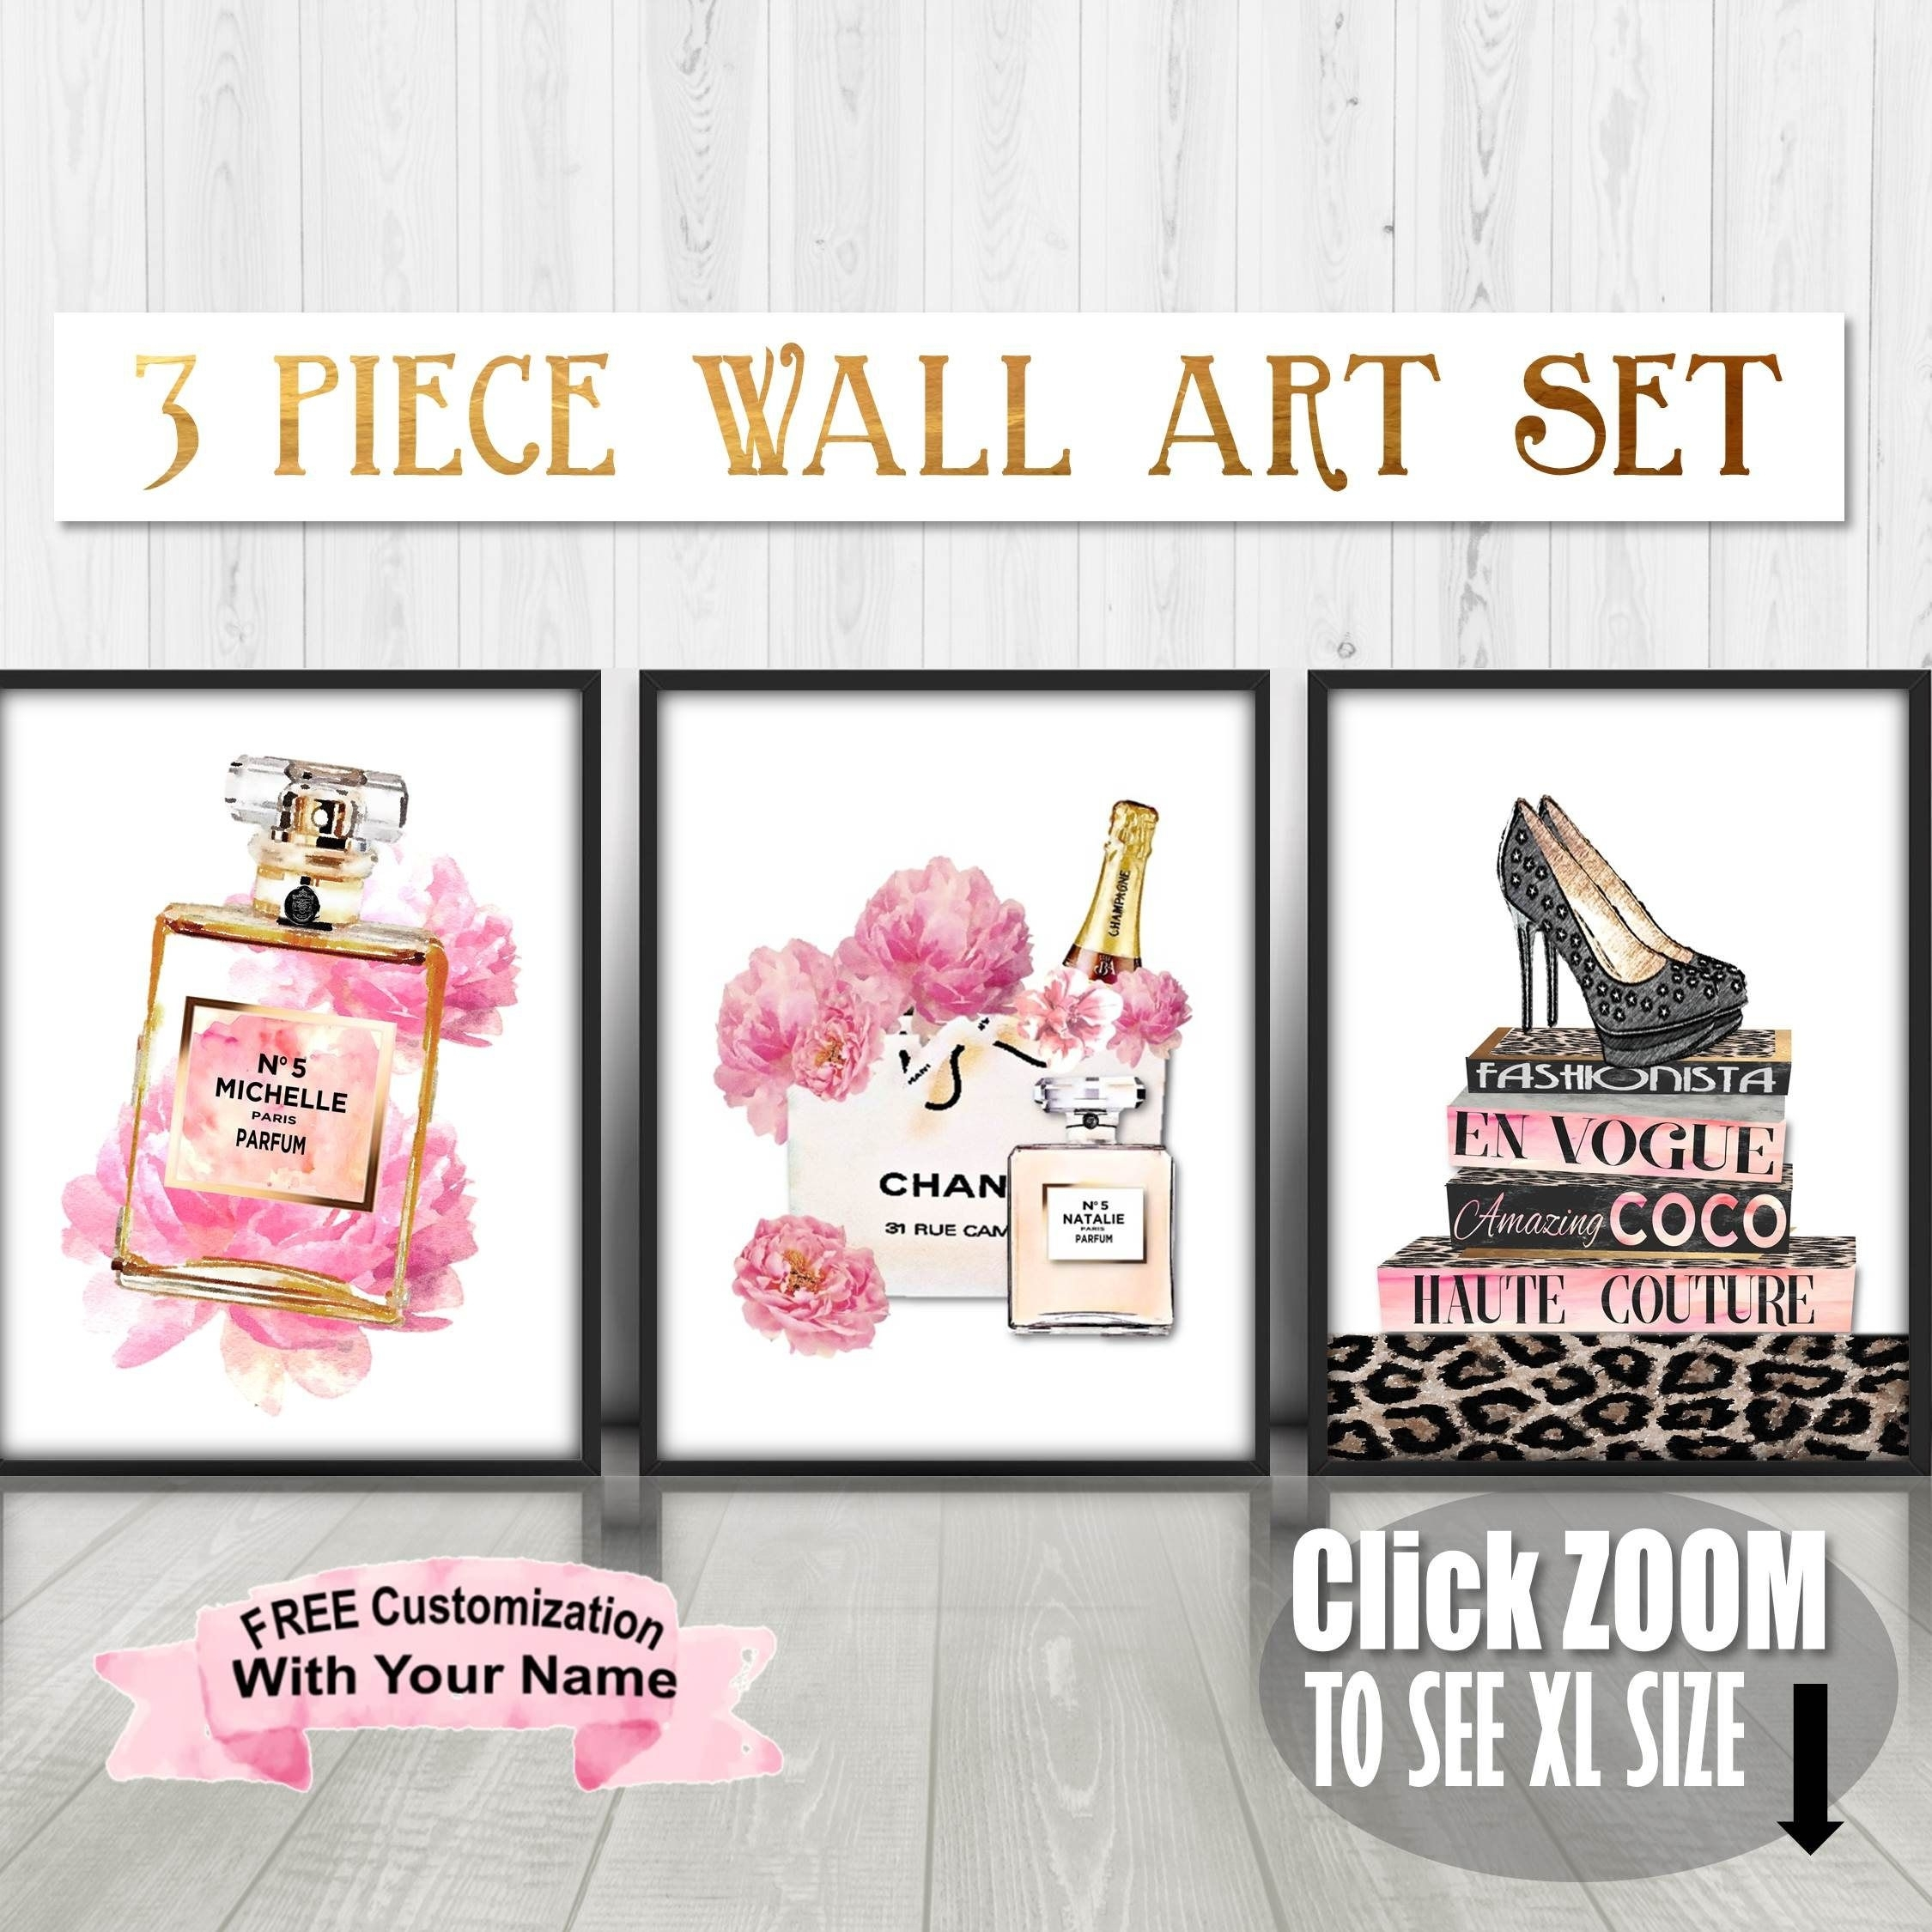 Fashion Wall Art, Fashion Illustration, Fashion Prints, Fashion Intended For Most Current Fashion Wall Art (View 12 of 20)